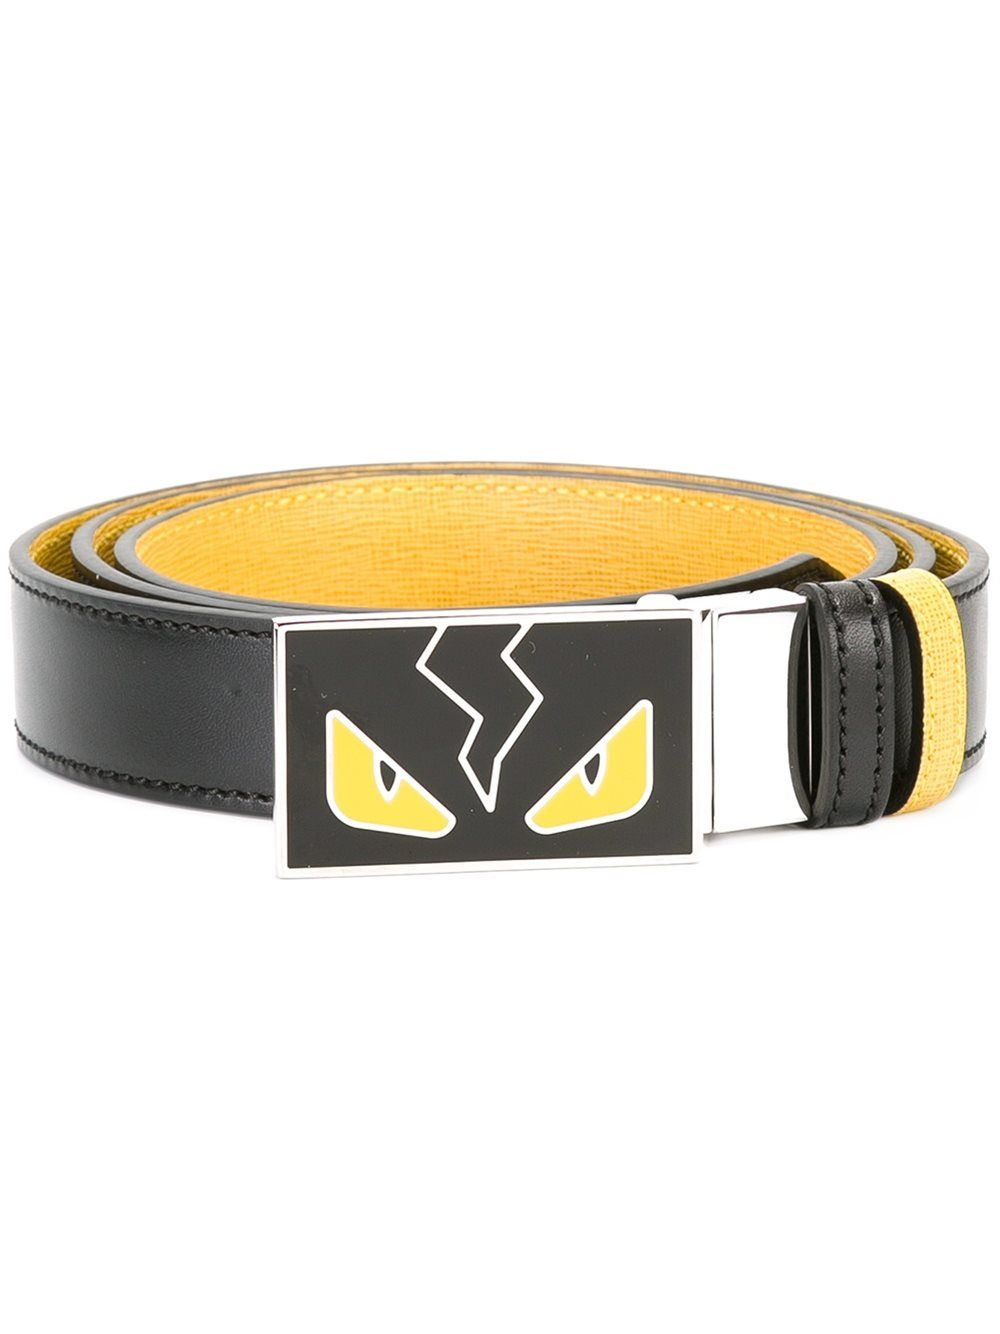 09ebc6fba28e fendi  men  bagbugs  black  yellow  belt  style  fashion www.jofre ...